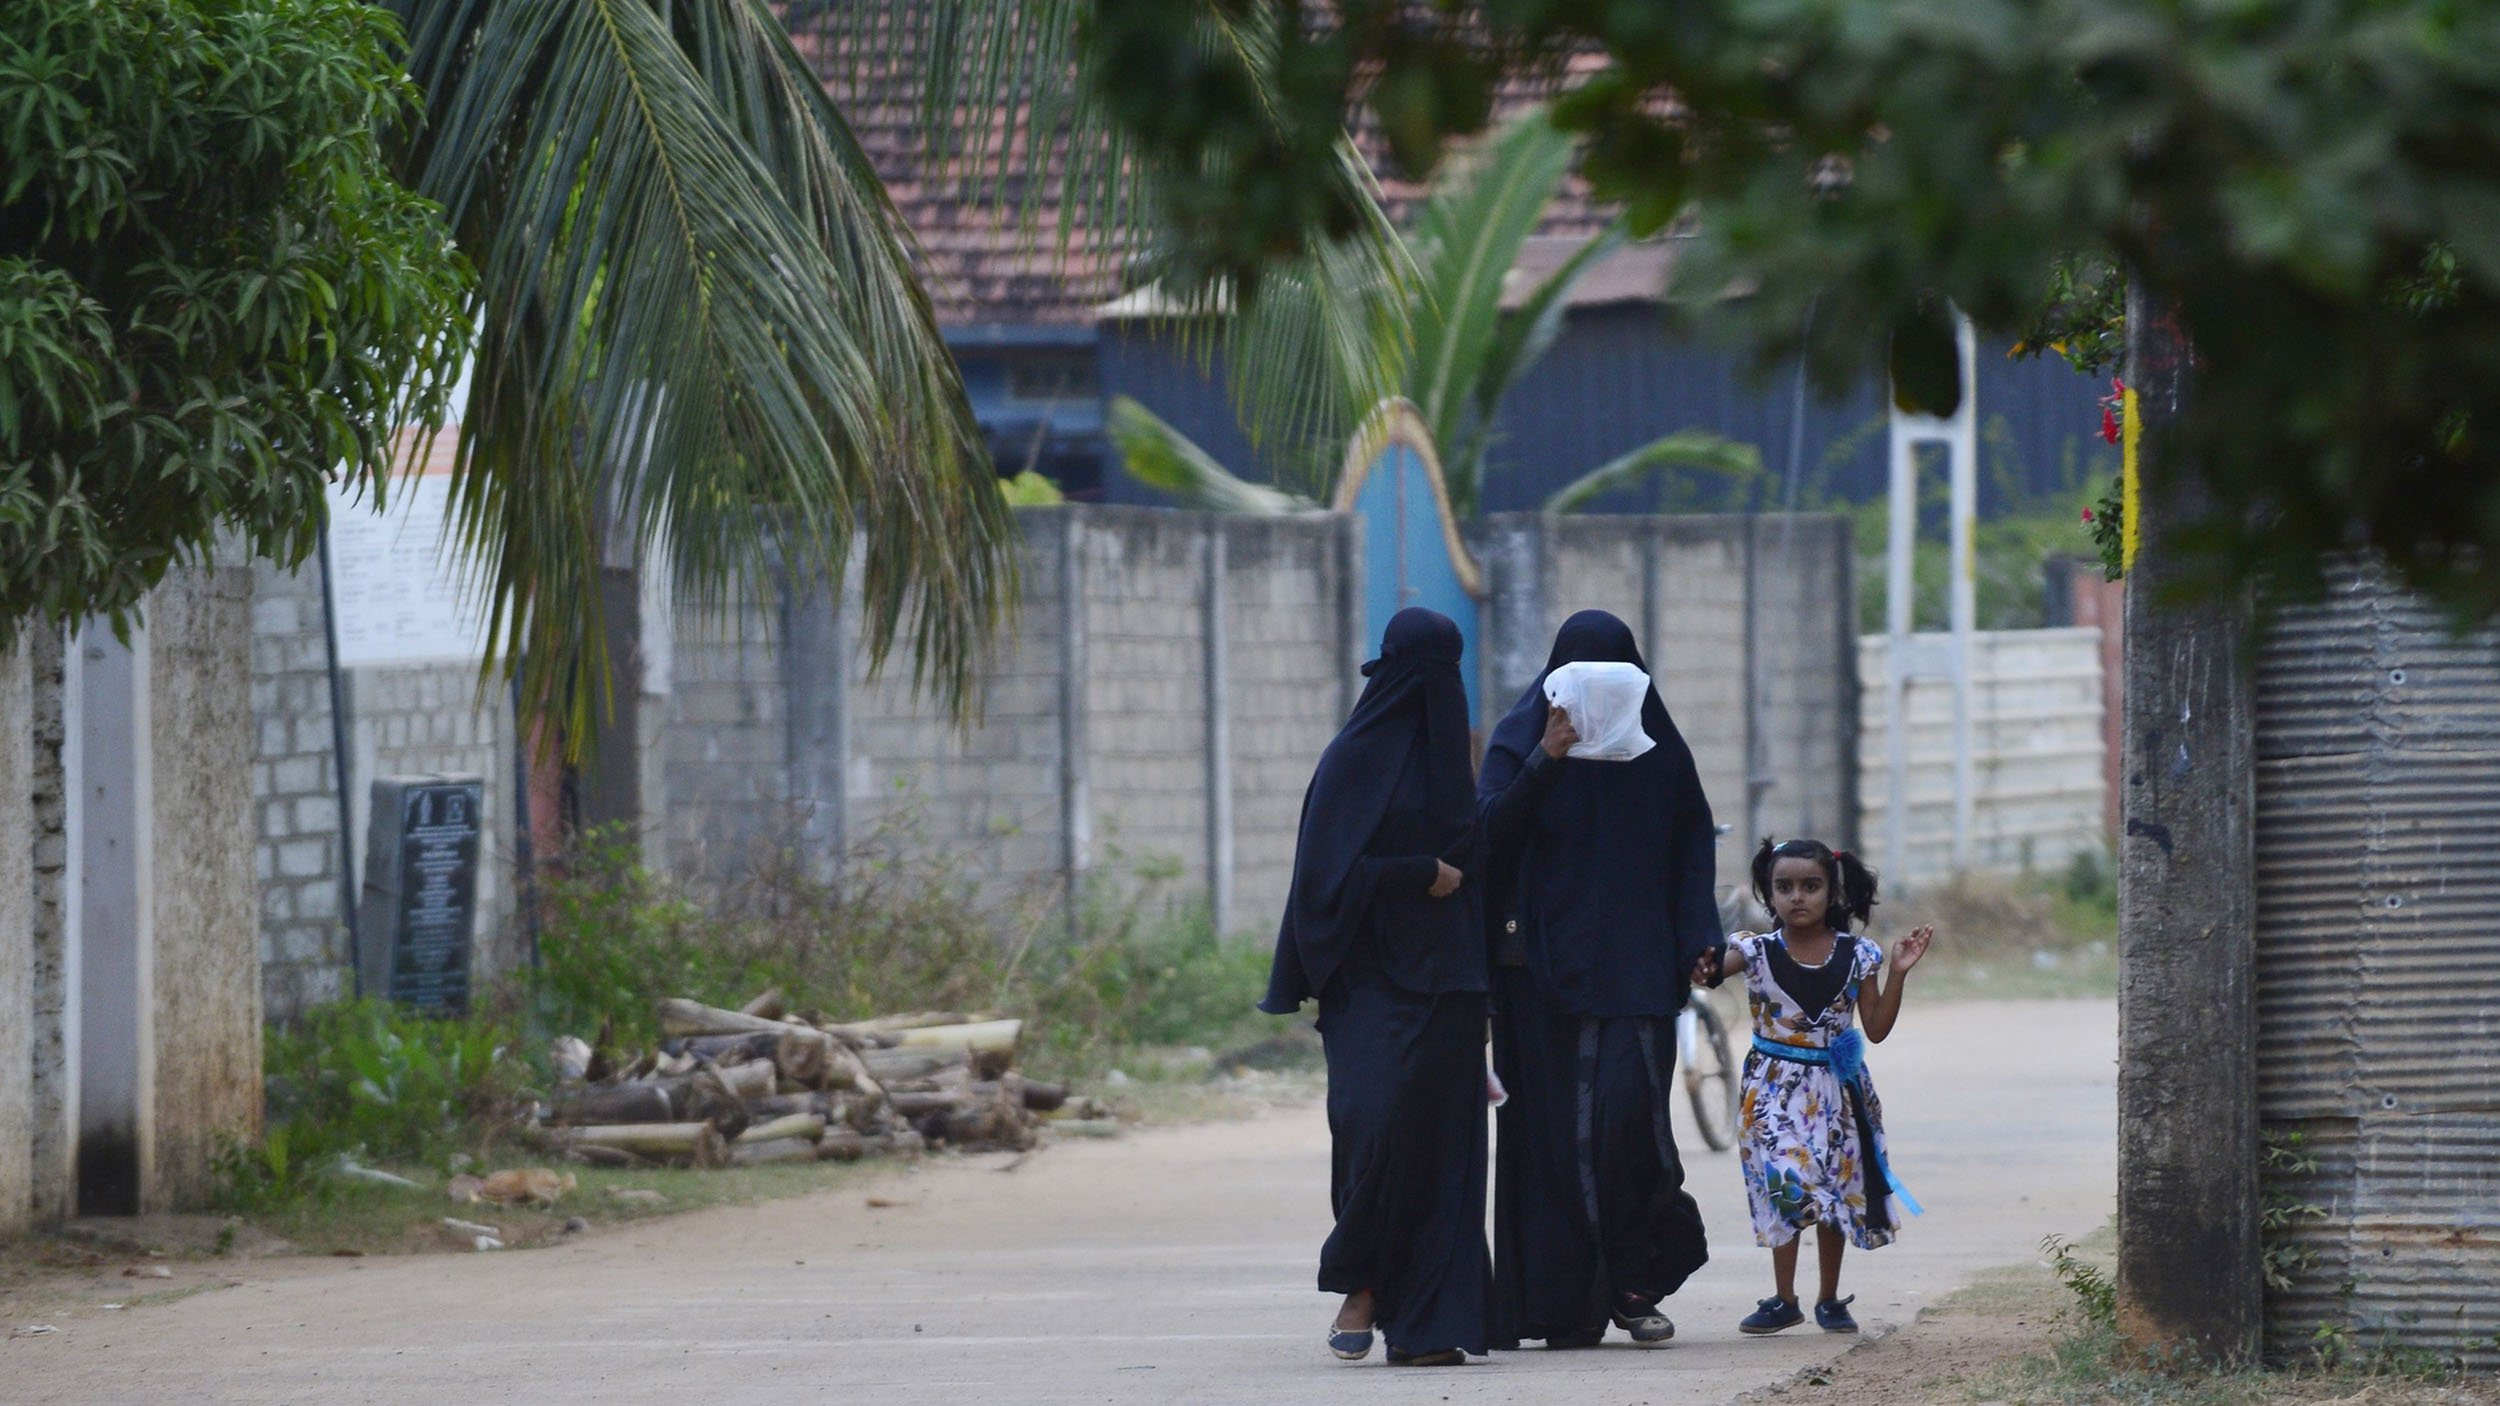 Sri Lankan Muslim women walk with a girl along a road in Kattankudy, Sri Lanka in an undated image. Credit: Lakruwan Wanniarchchi/Getty Images via CNN)